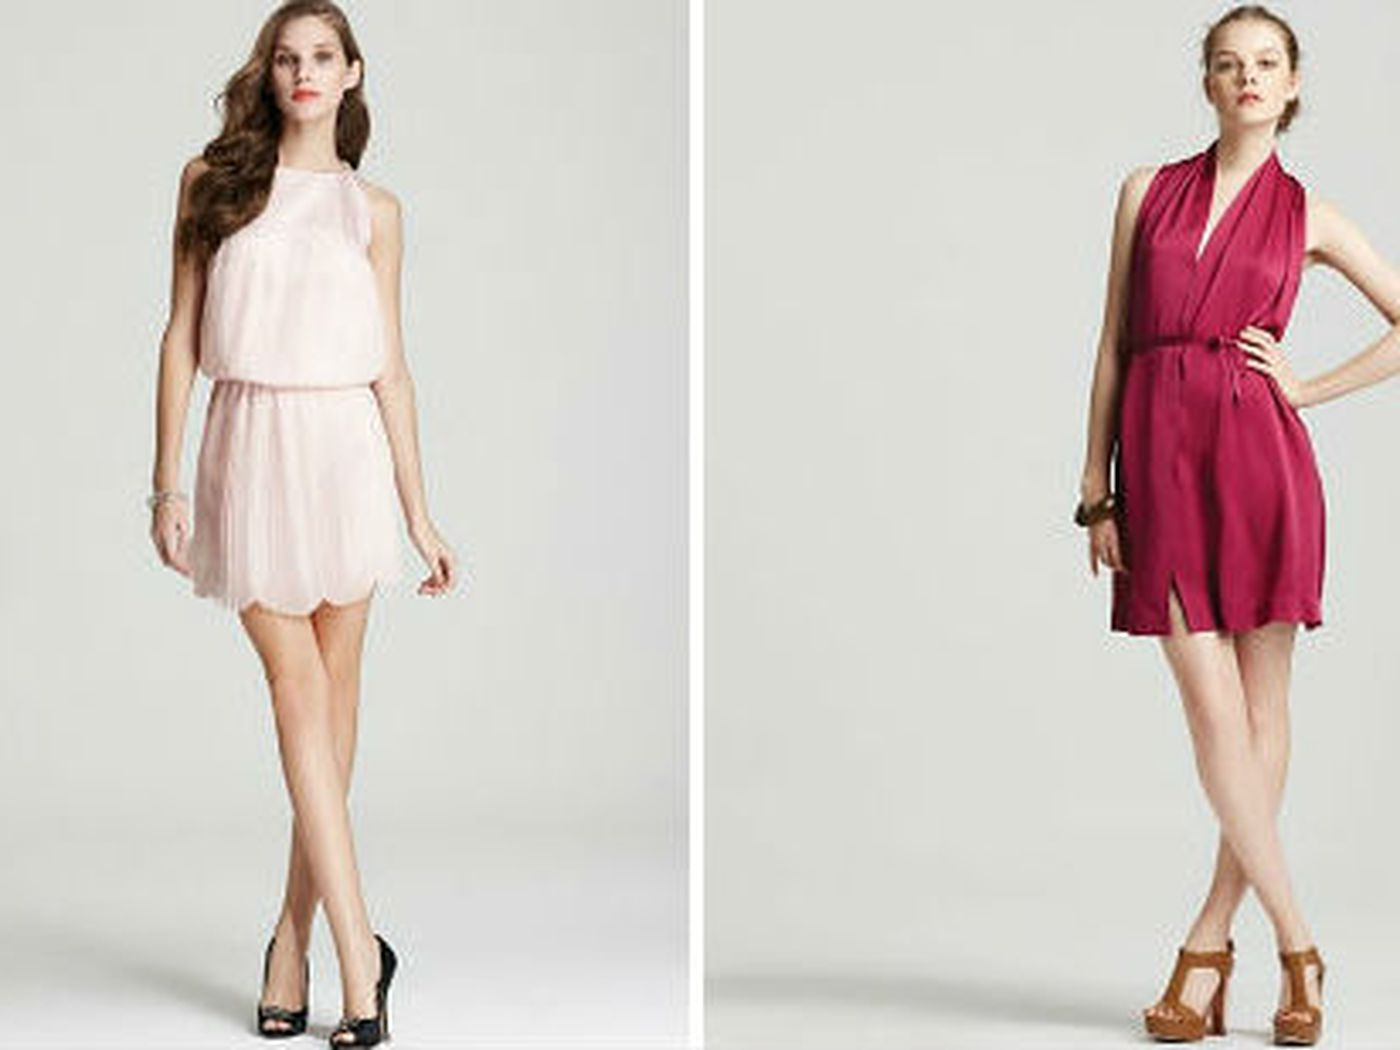 e378e3df1a72 Summer Dresses for 25% Off; Massive Loeffler Randall Savings at MyHabit